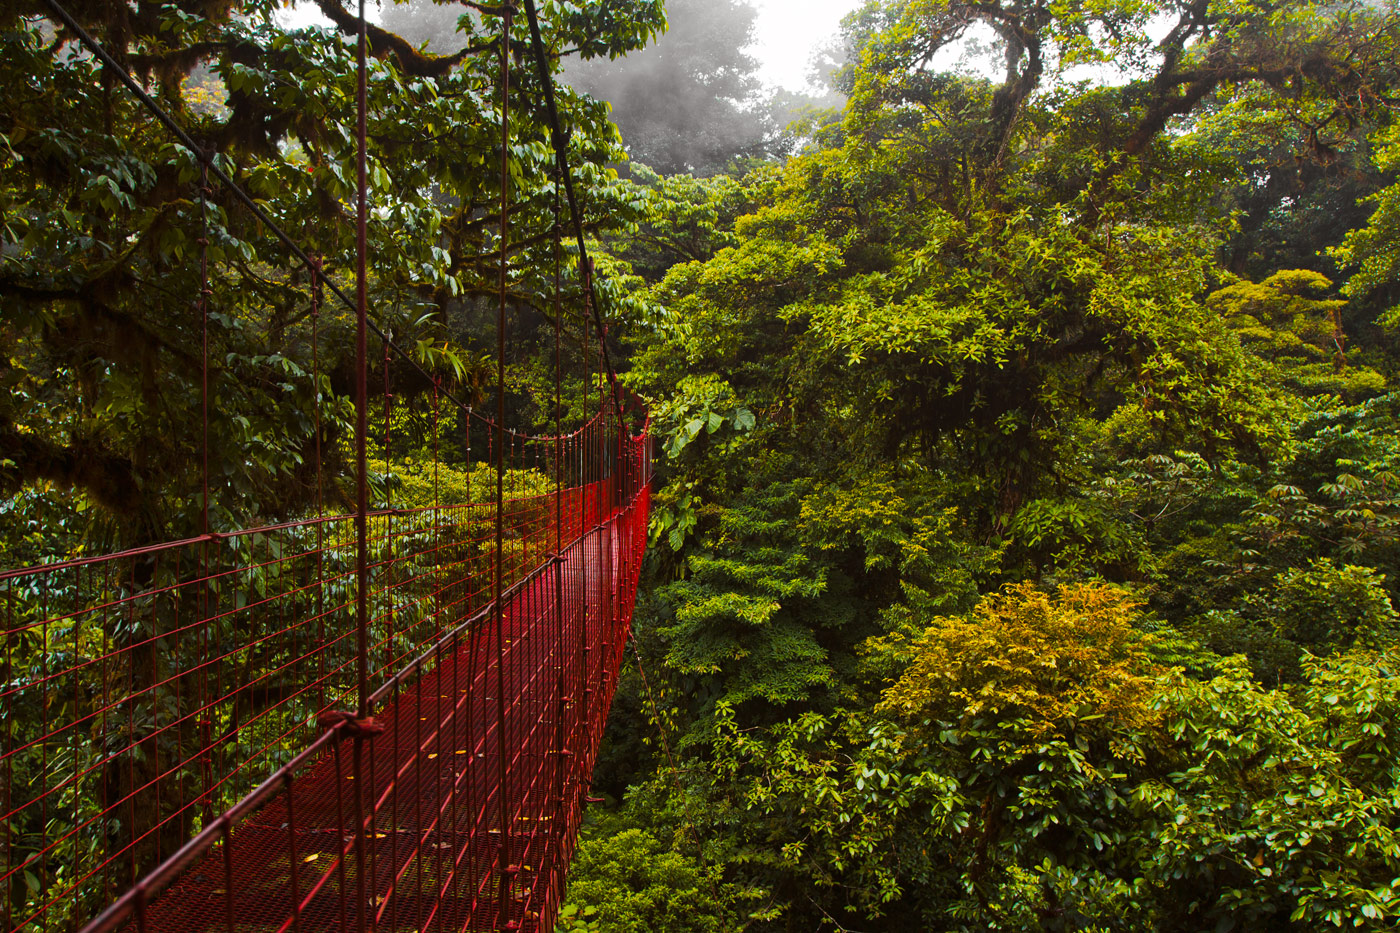 Nick-Zantop-Photography-Rainforest-2